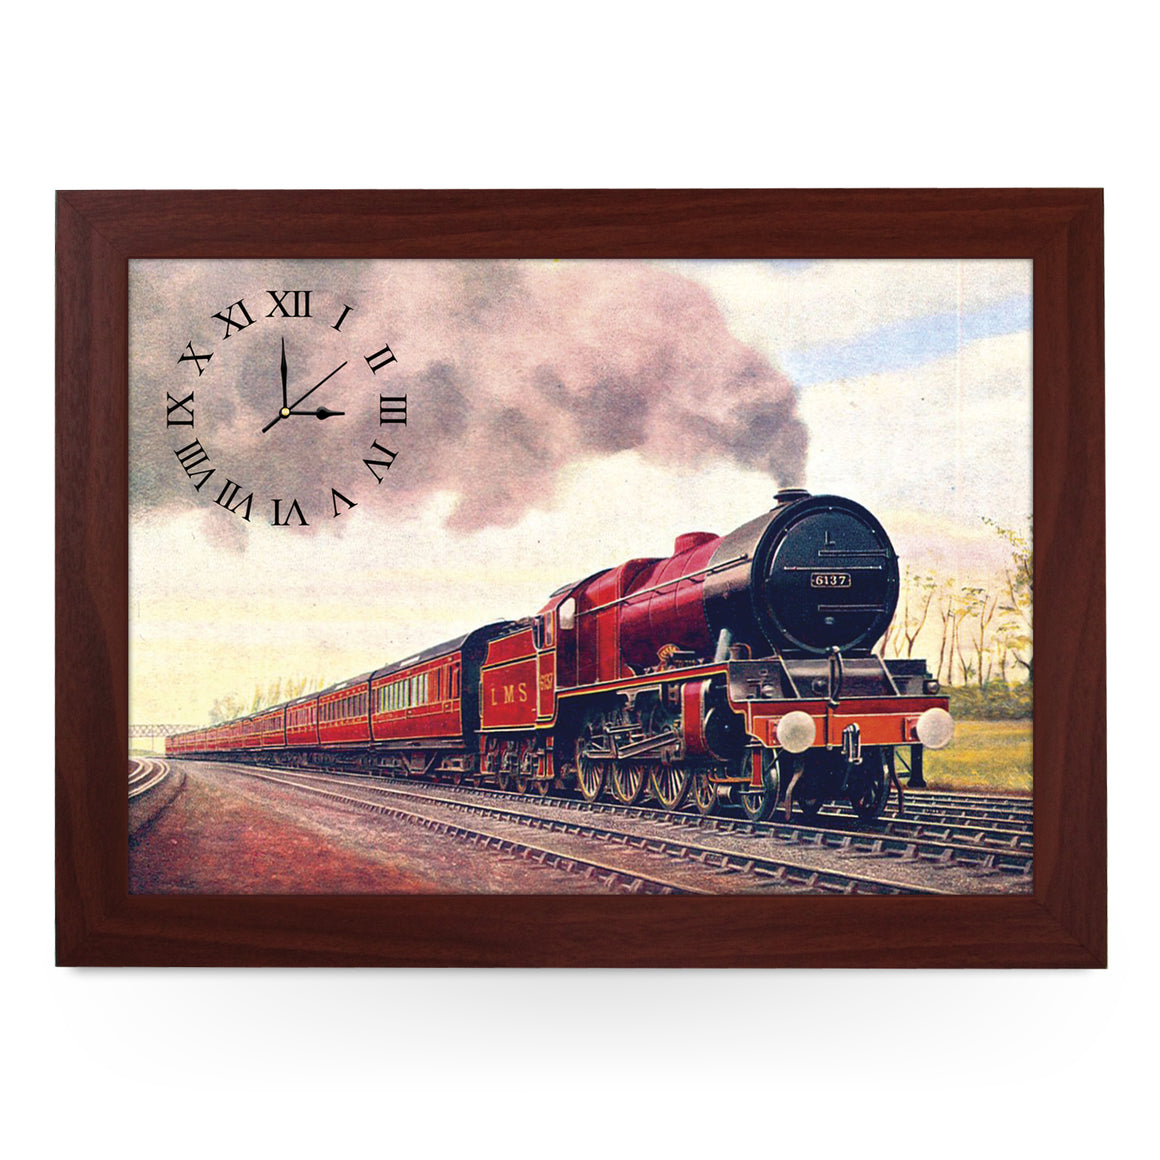 Wooden Picture Frame Clock. CL118 Royal Scotsman 1928 Train